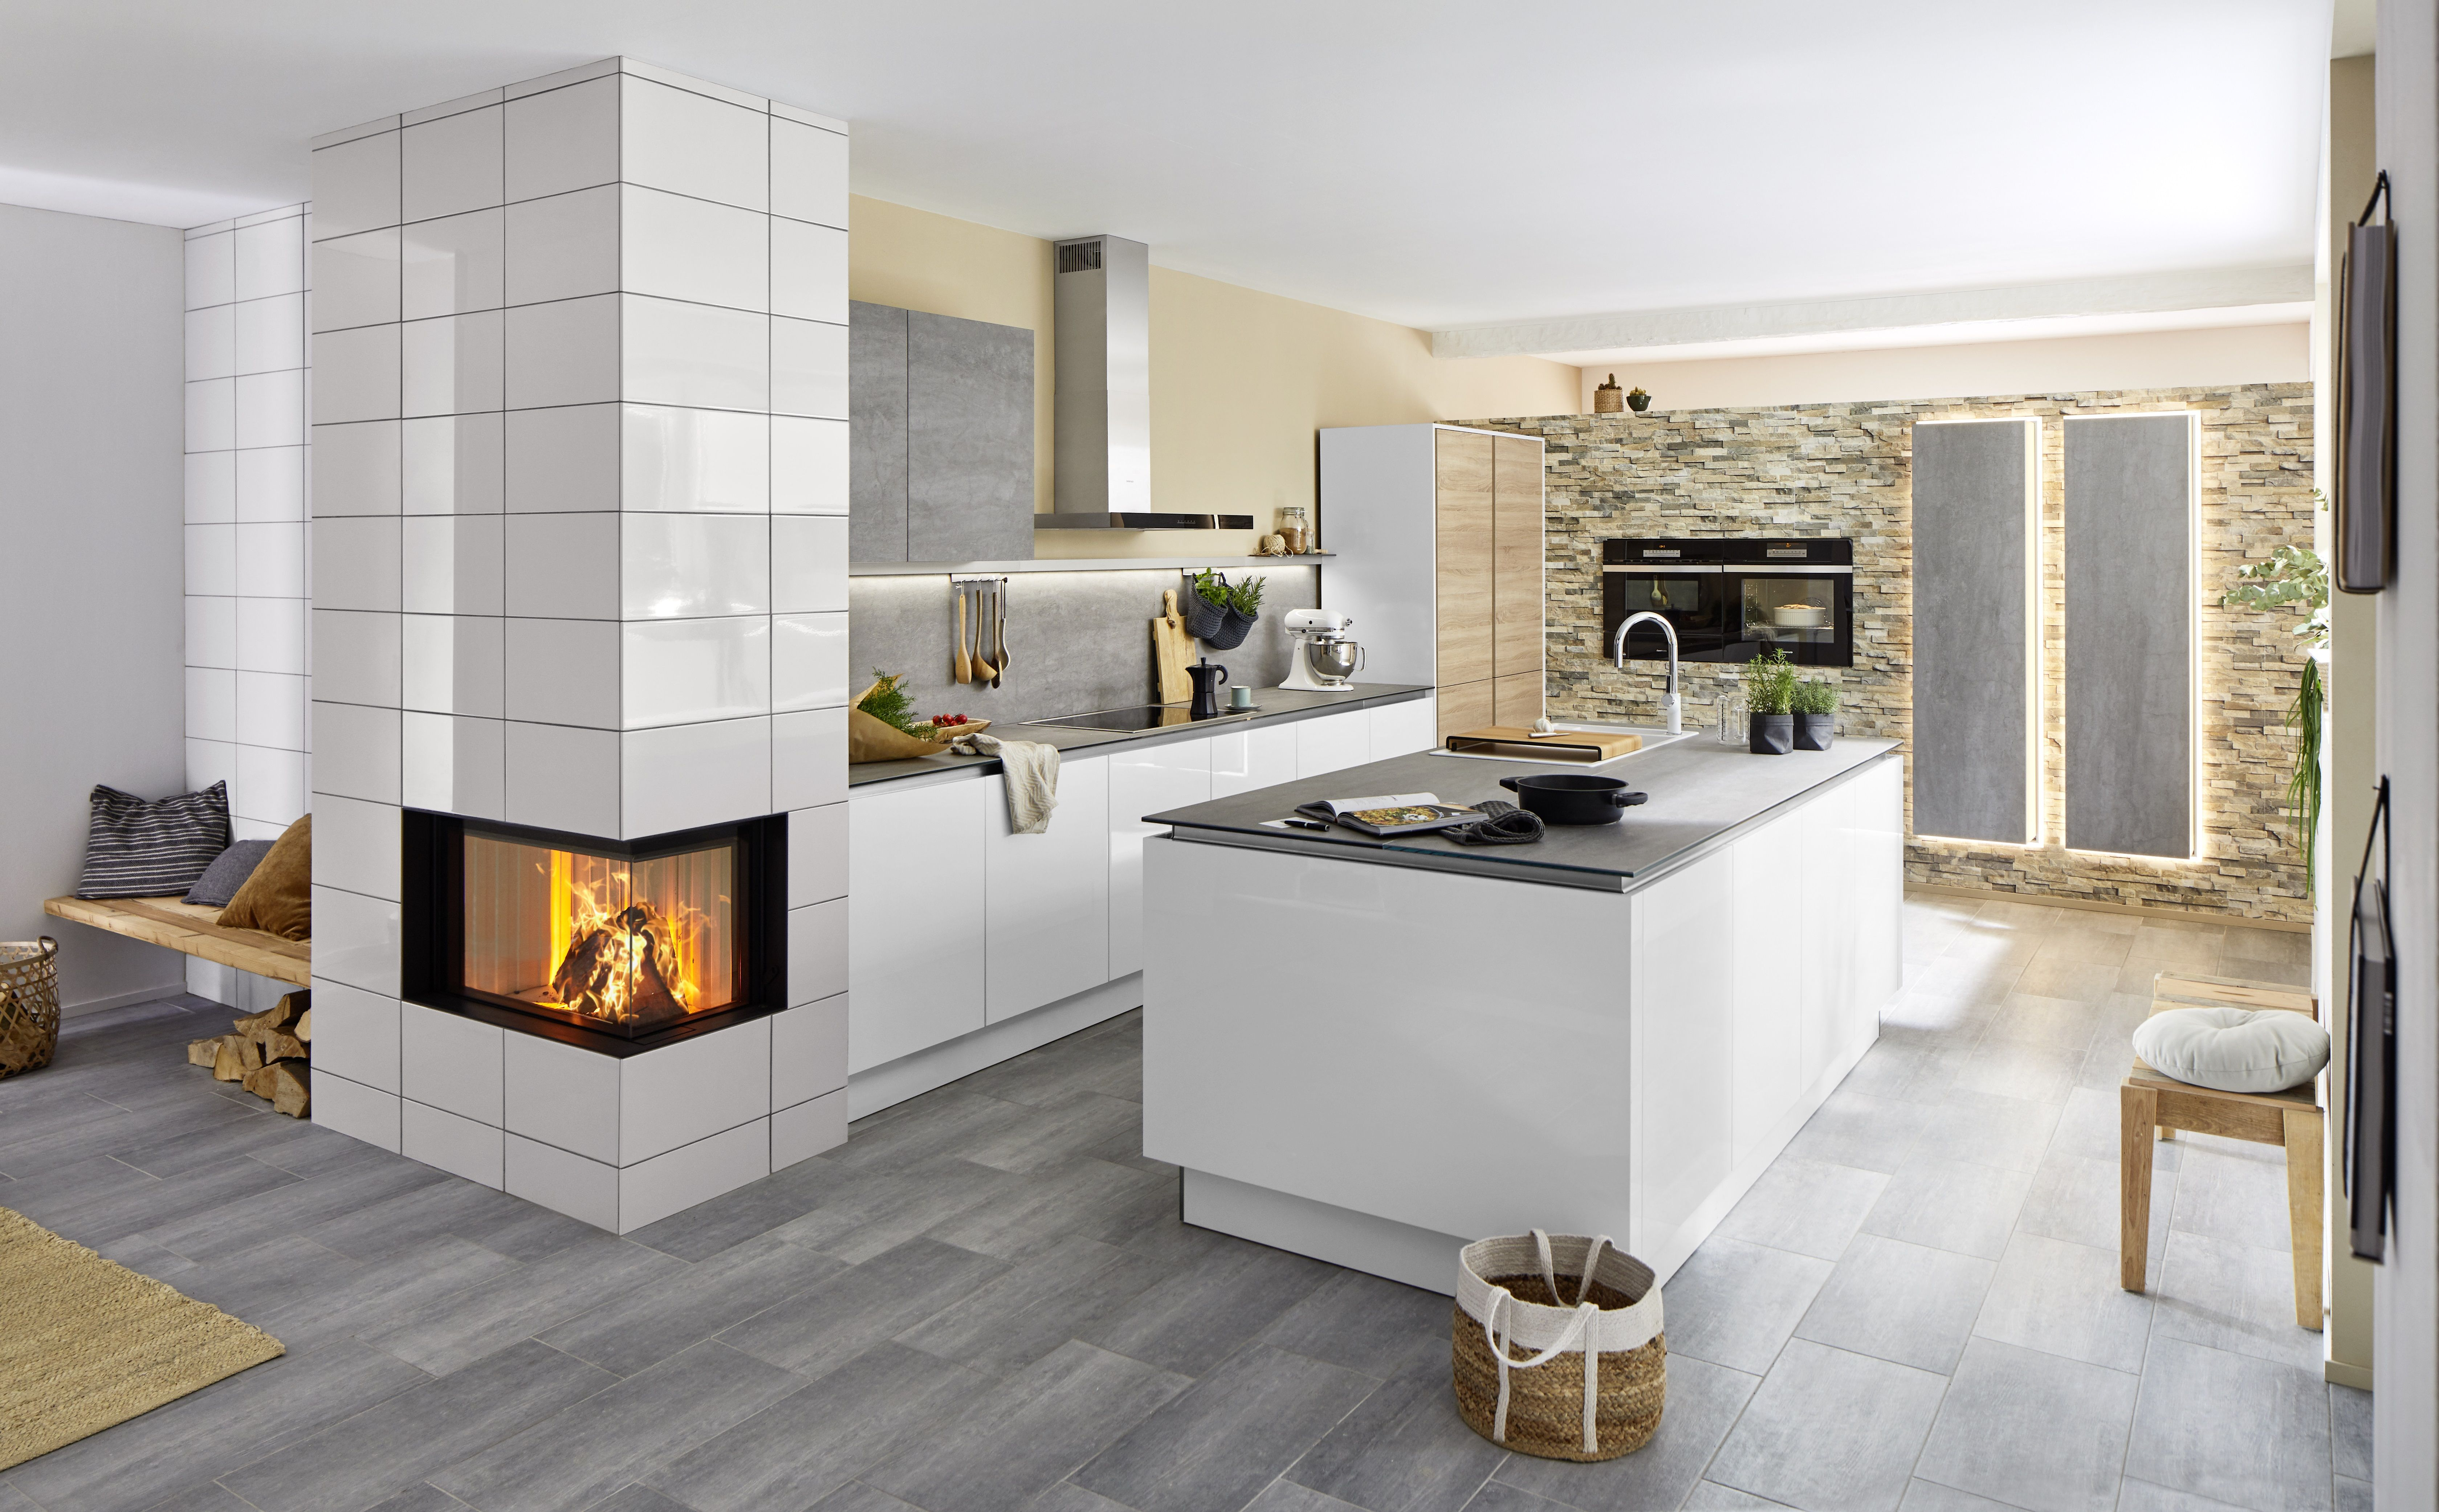 Störmer Küche Mixed Media Kitchen, Of Concrete, Brick, And Wood By Stormer. The Integrated Fireplace Really Completes The D… | Kücheninsel Mit Spüle, Küche Mit Insel, Kücheninsel